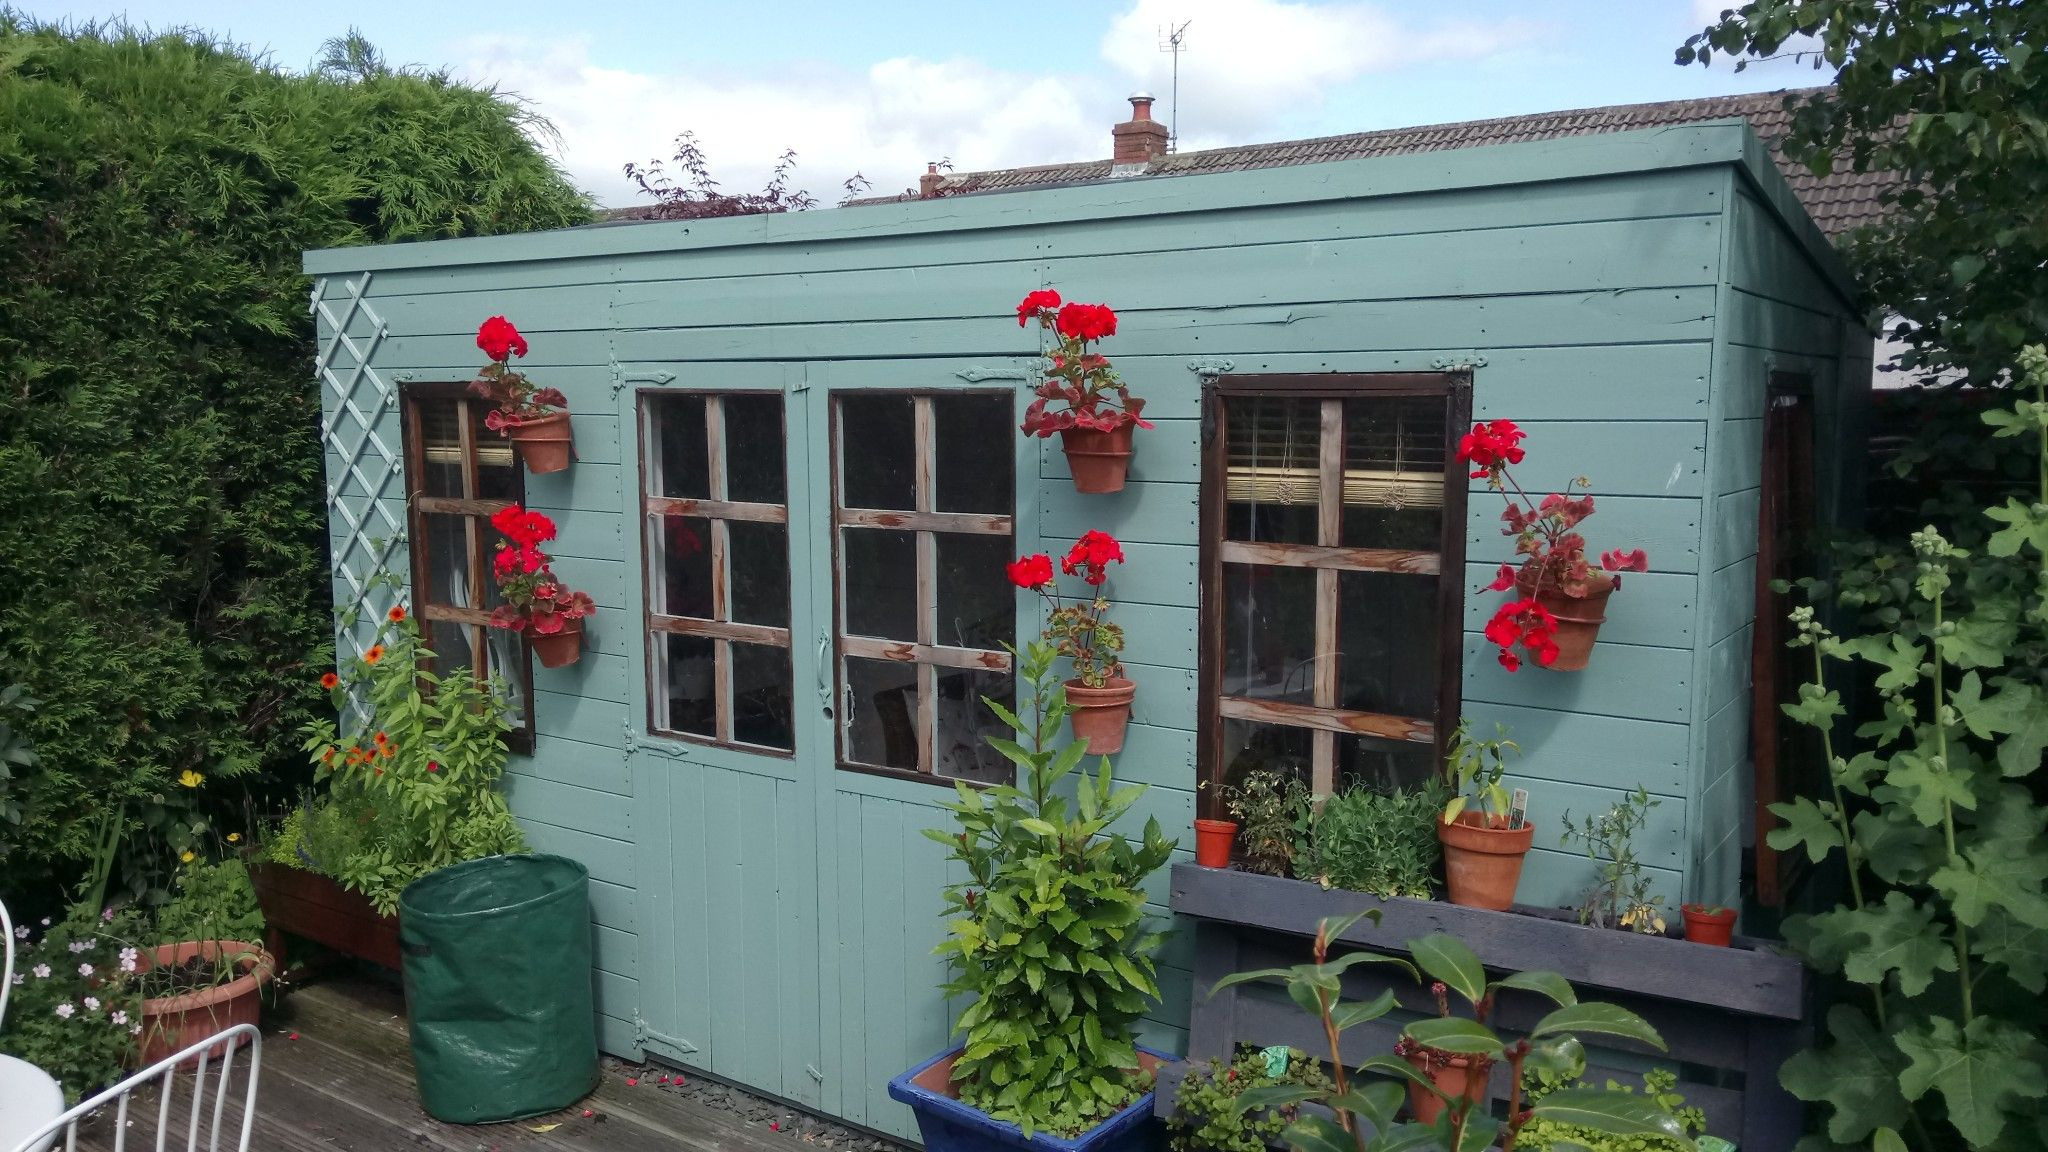 Every year I hang potted geraniums onto the front of the Summerhouse ...